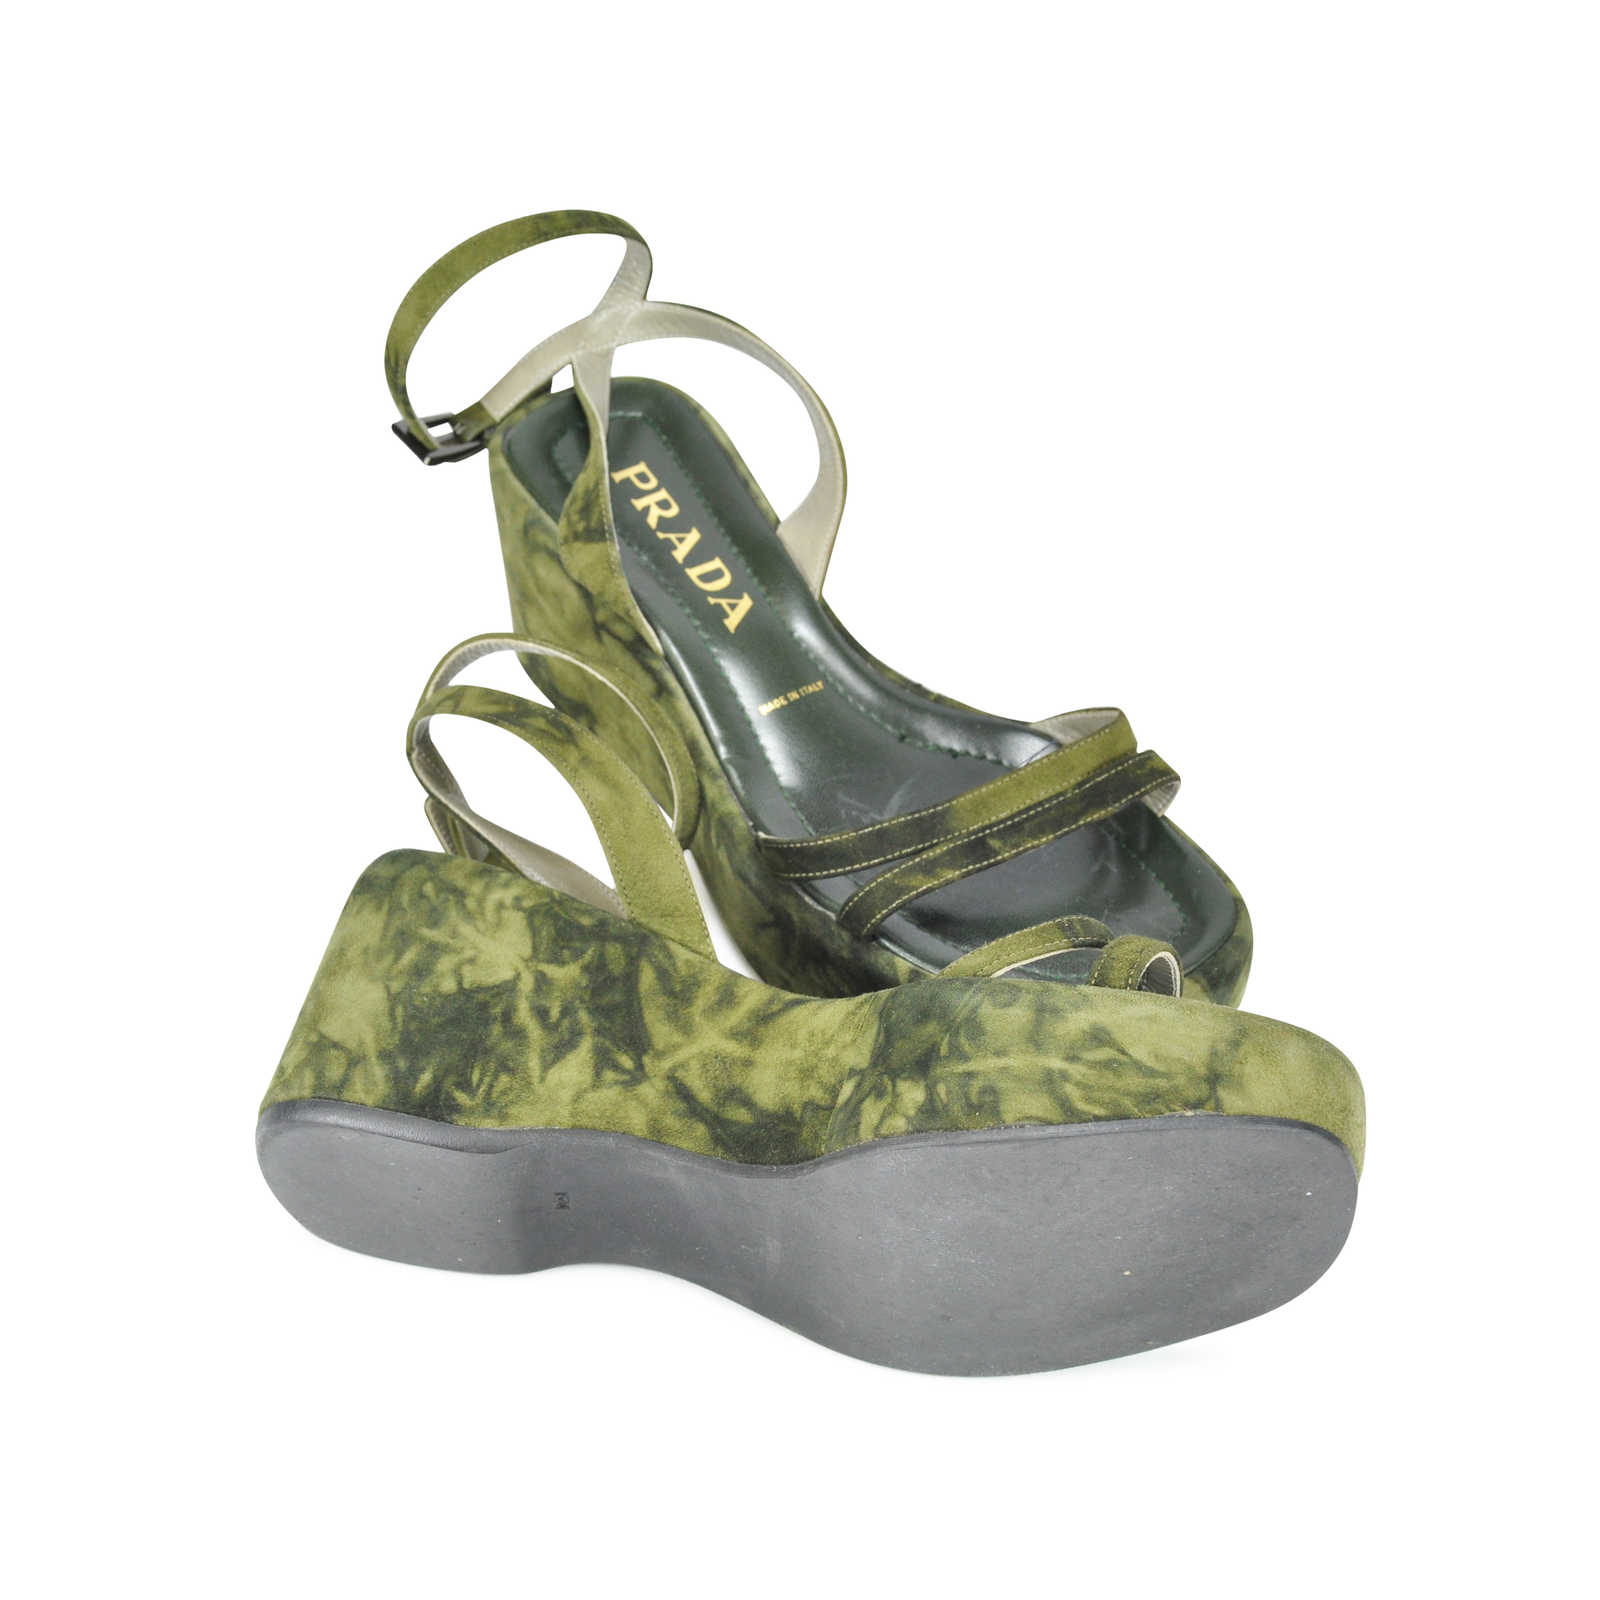 68aa038b8674 ... Authentic Second Hand Prada Tie Dye Wedges (PSS-047-00050) - Thumbnail  ...